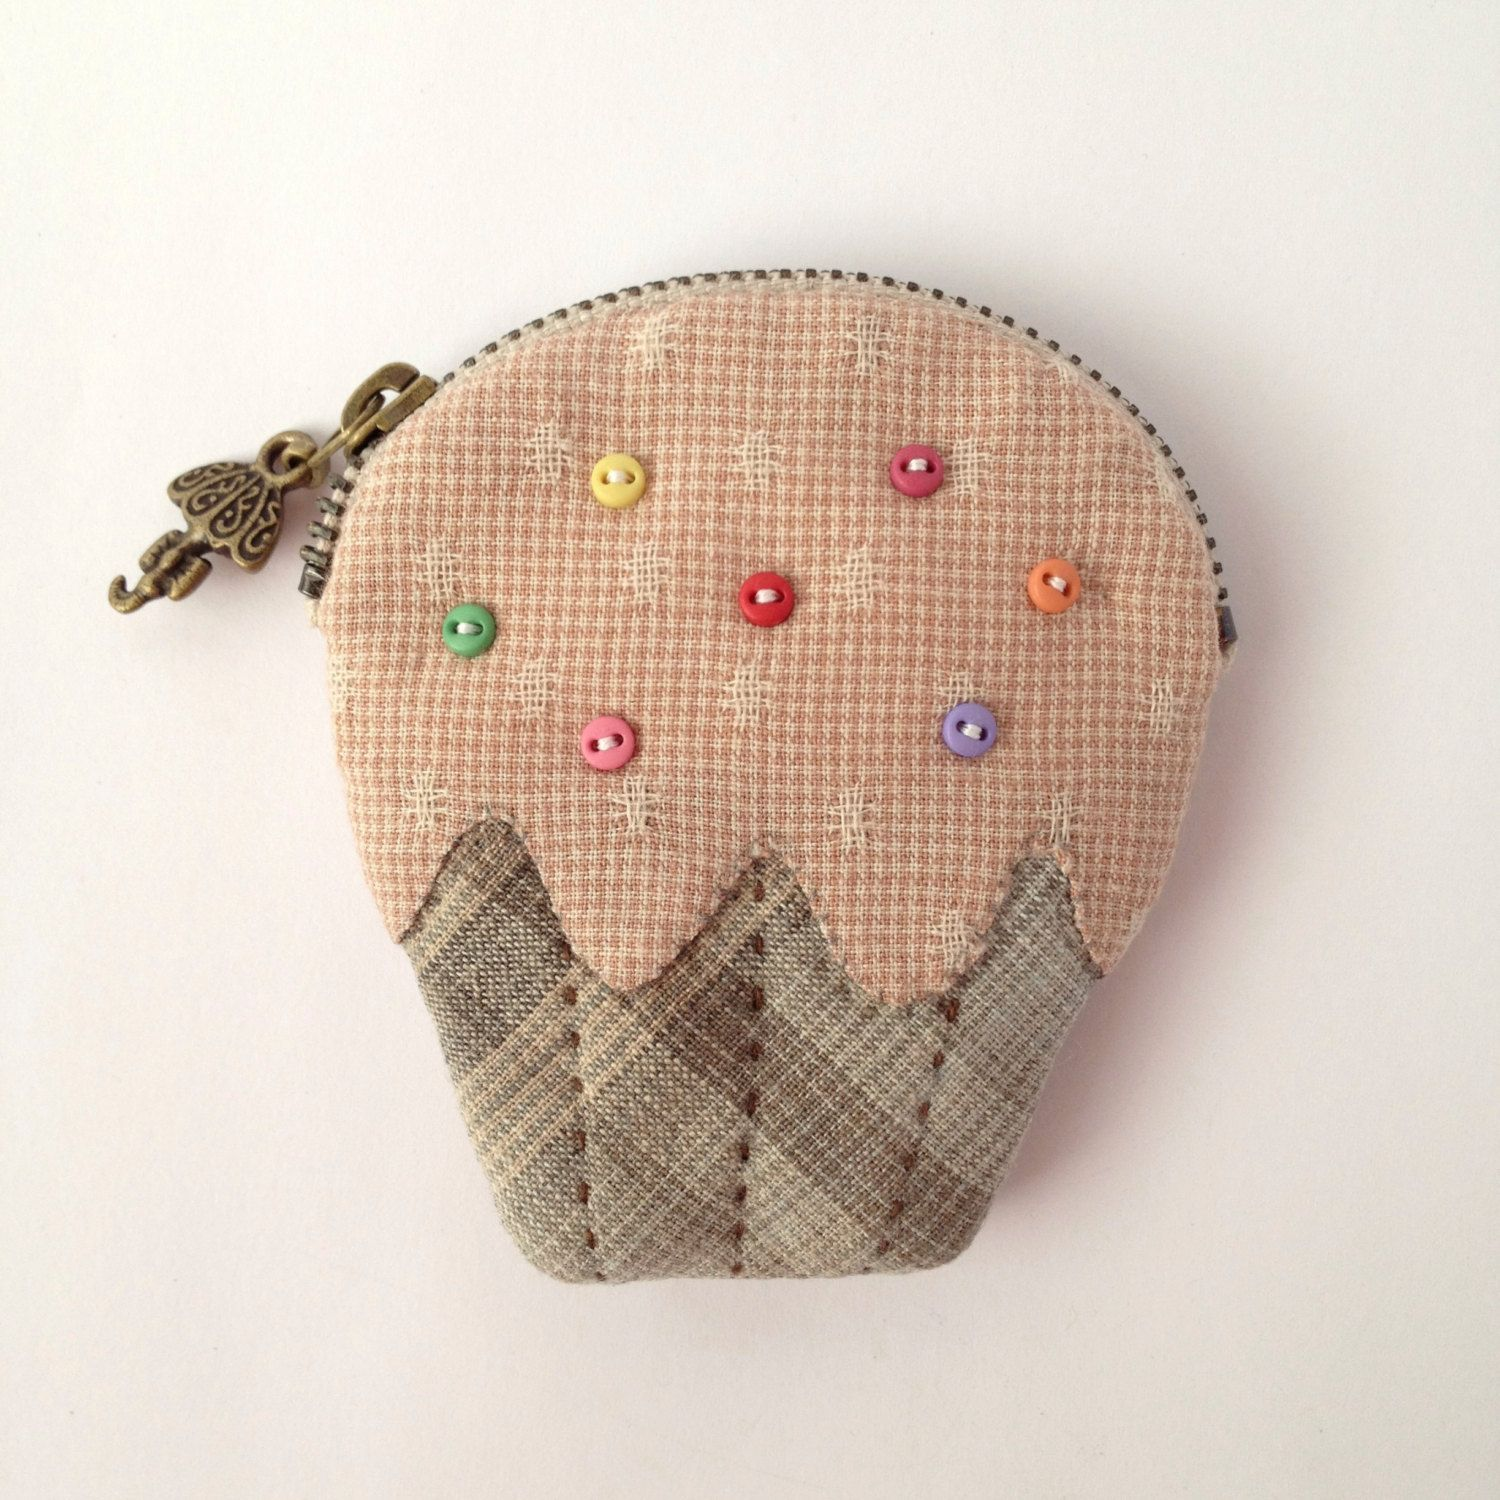 Coin Purse and Pouch with Cute Ice Cream Applique. ££11.00 GBP, via Etsy.